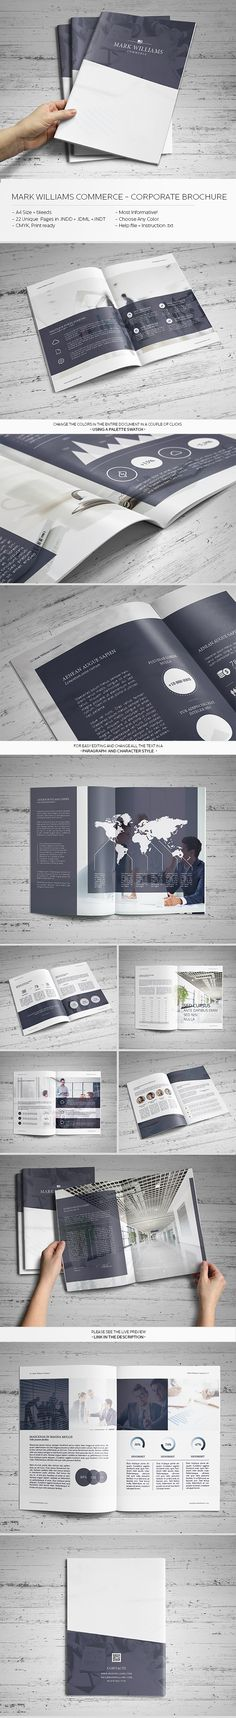 Mark Williams Commerce - Corporate Brochure by Realstar , via Behance